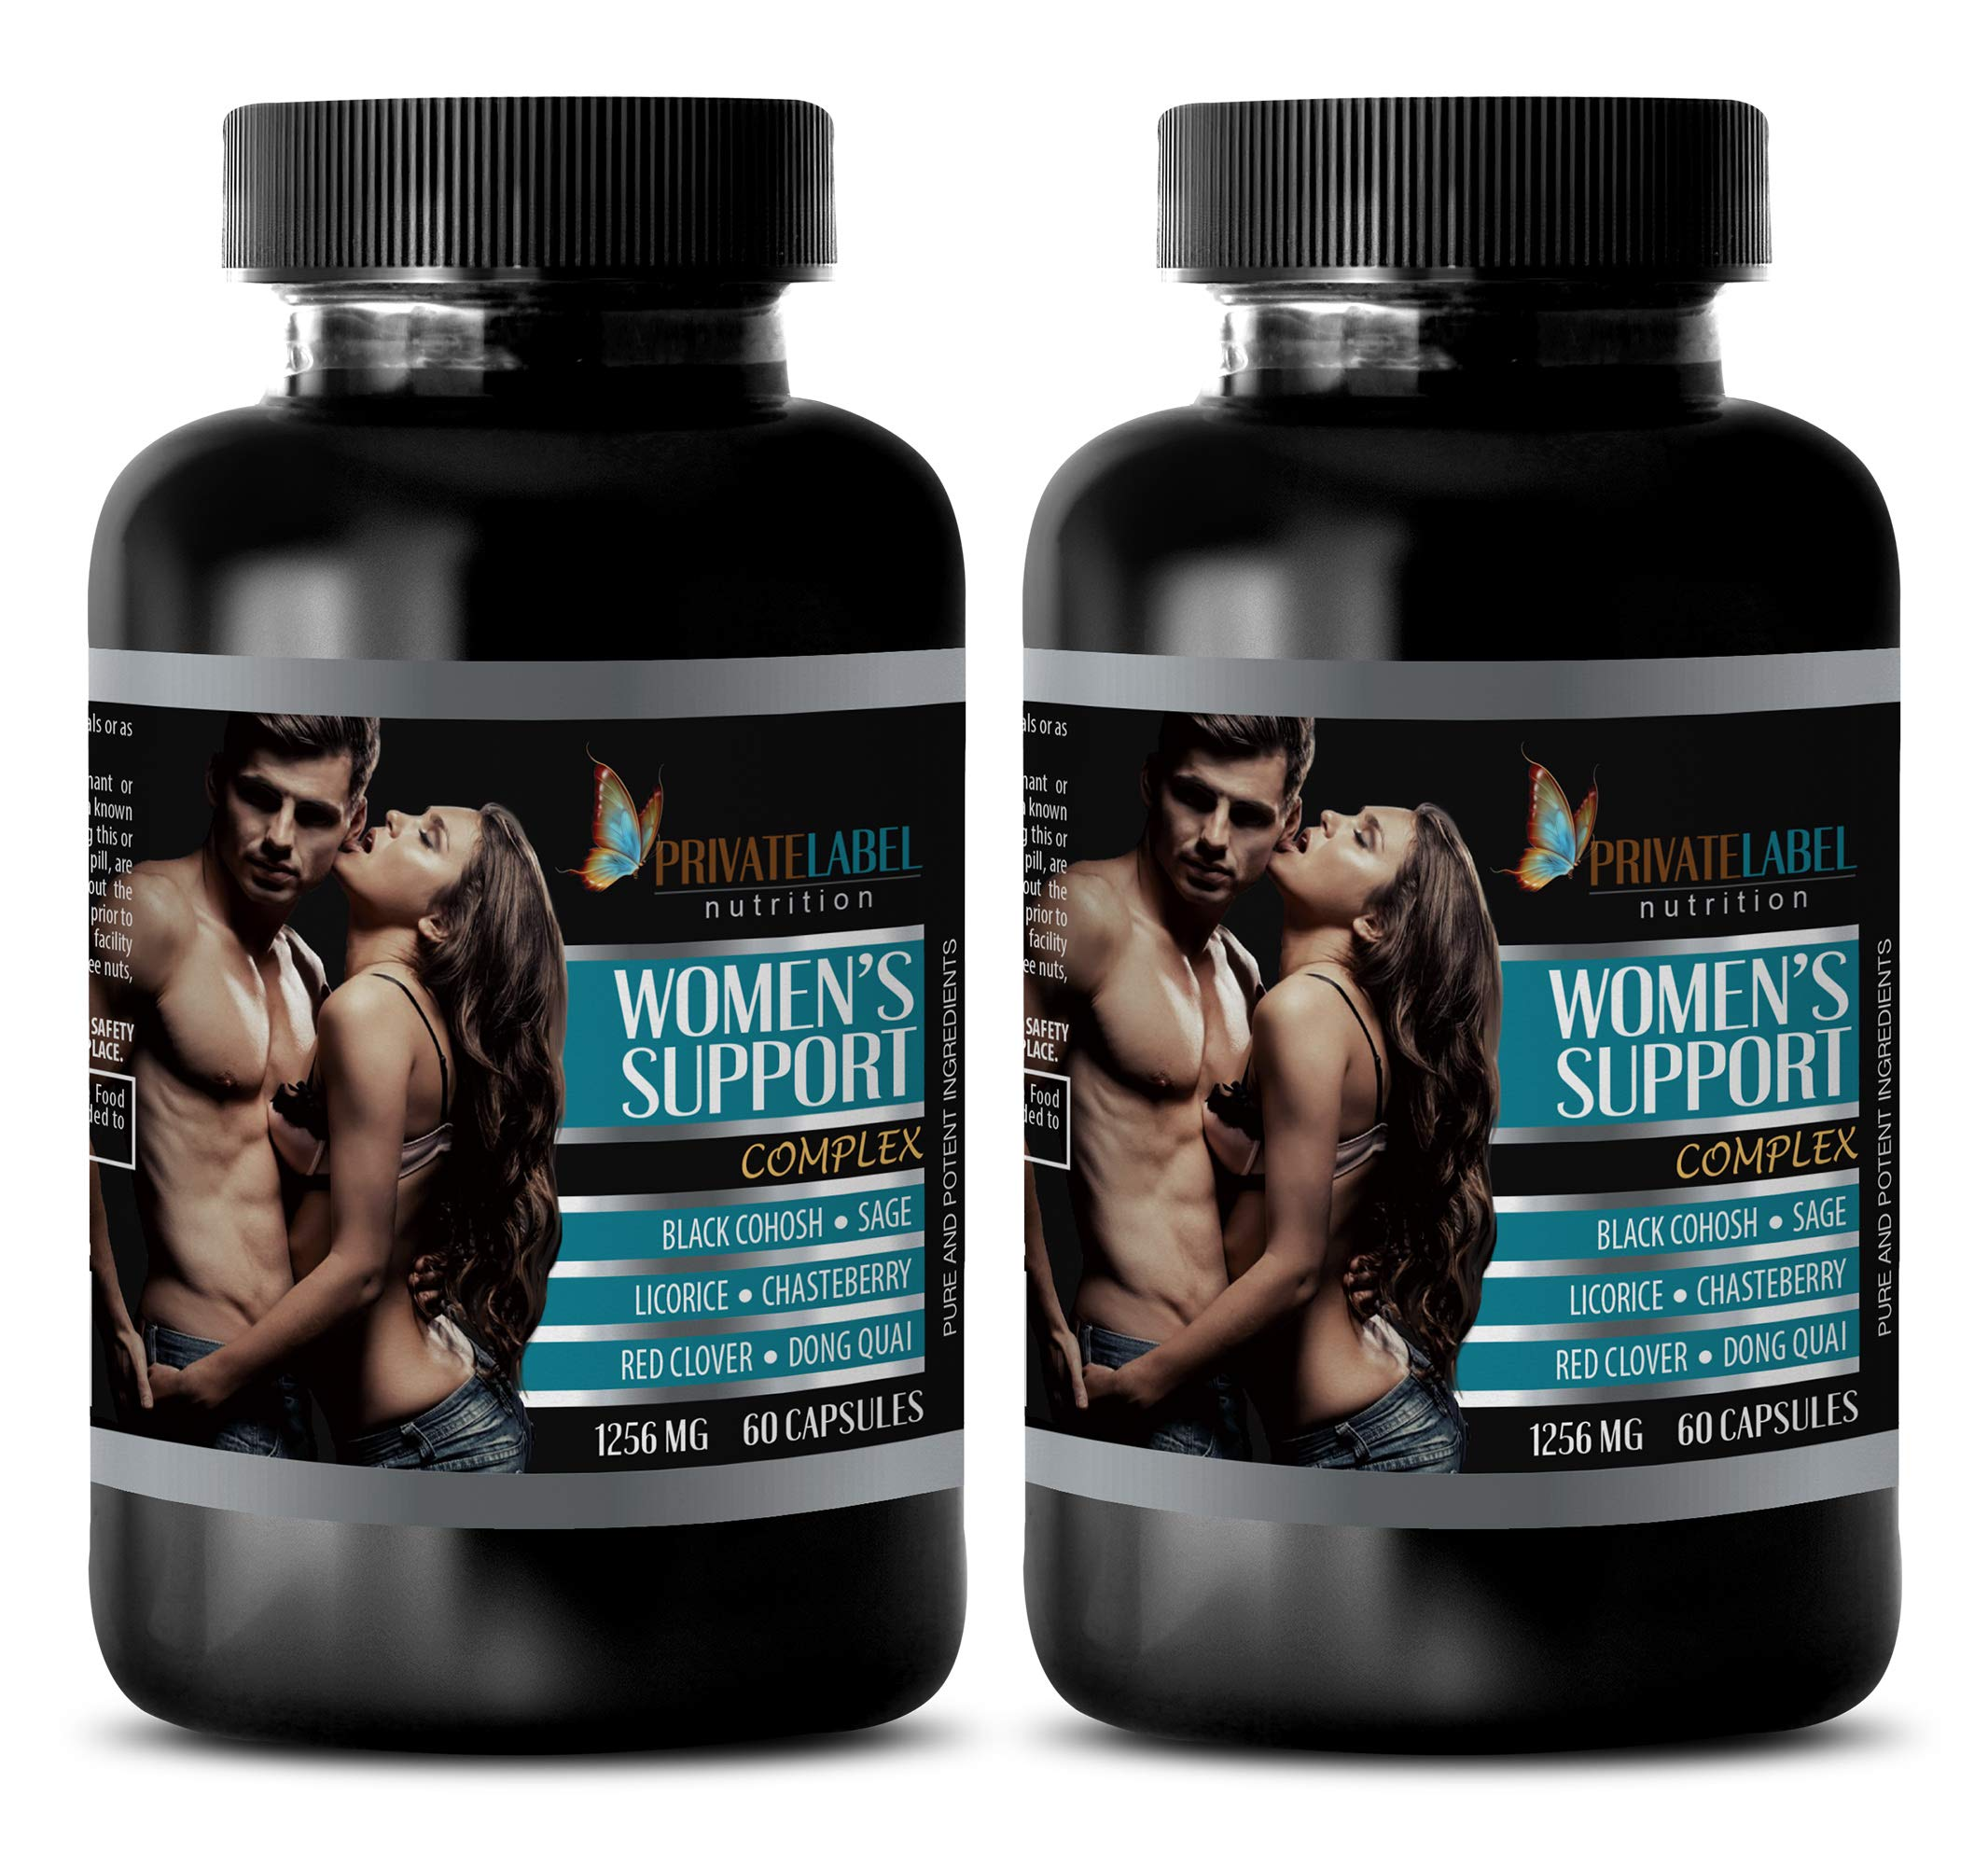 Sleeping aid for Women - Women's Support Complex - Pure and Potent Ingredients - Dong quai Root Powder - 2 Bottles (120 Capsules)